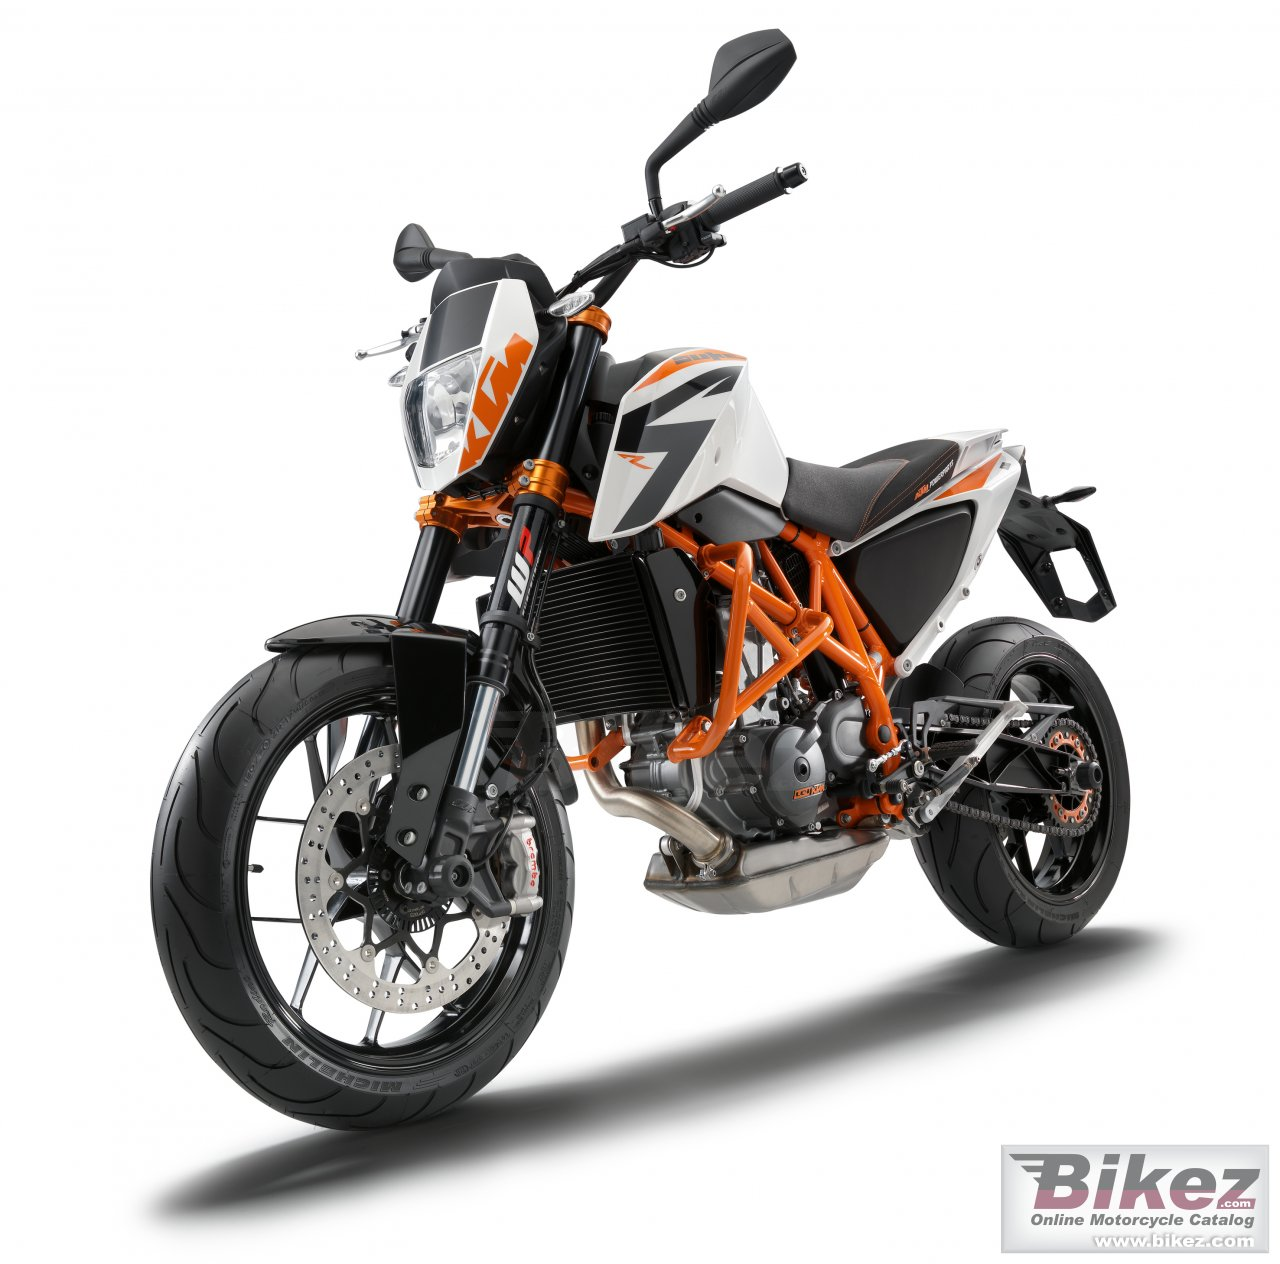 Big KTM 690 duke r picture and wallpaper from Bikez.com